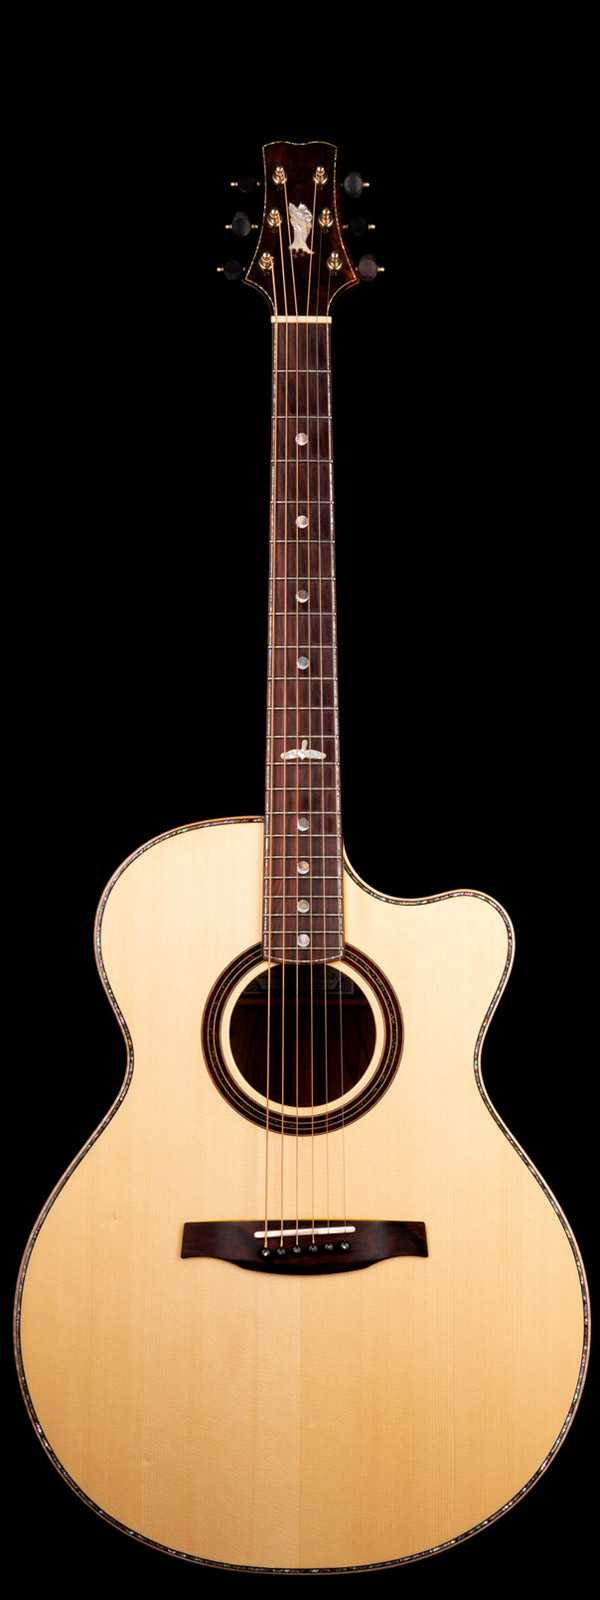 PRS Private Stock 2322 Angelus Adirondack Red Spruce Top with Cocobolo Back and Sides